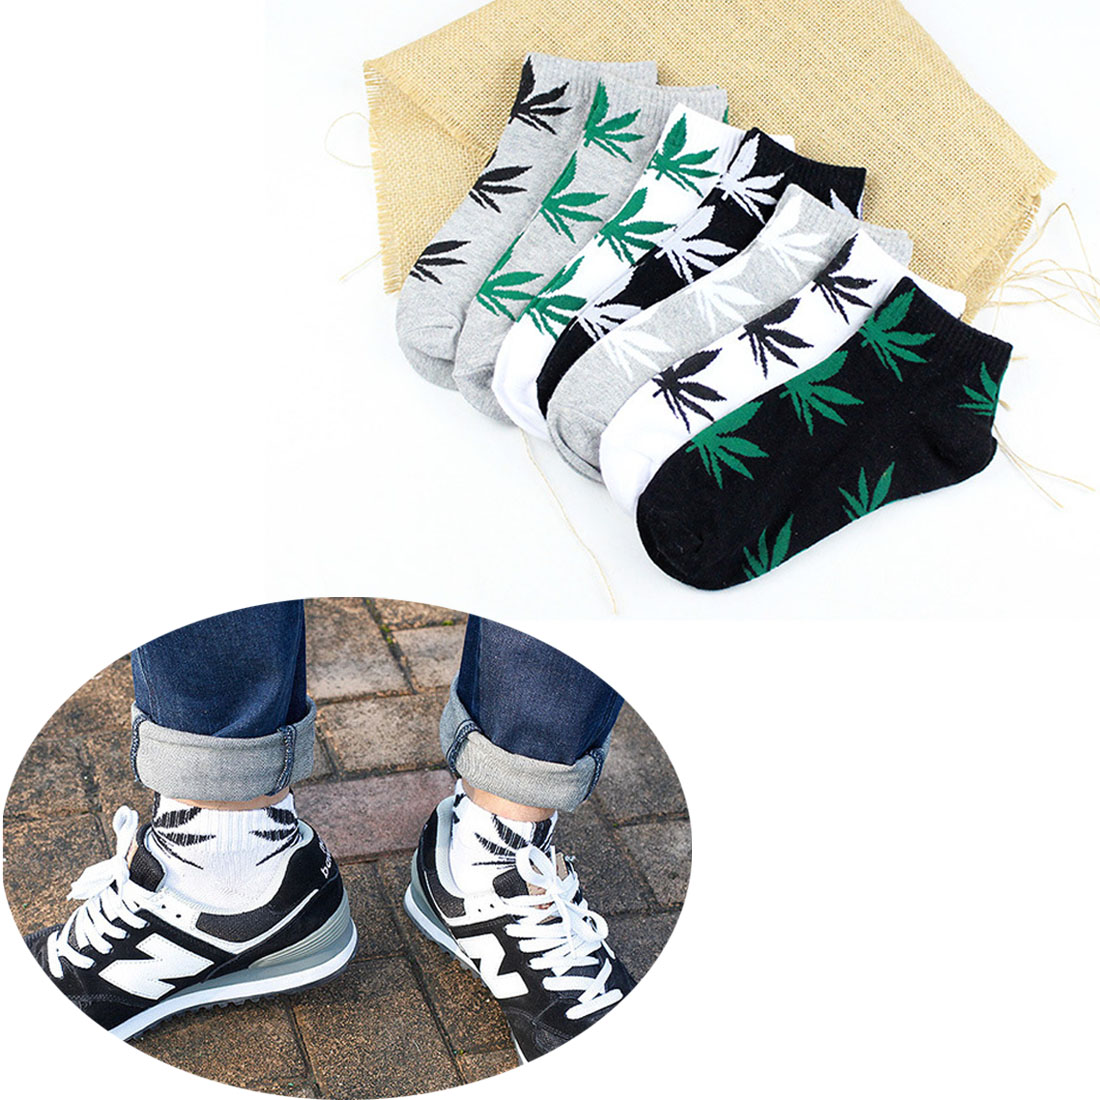 Mens Fashion Maple Low Cut Socks Printed Maple Leaf Sneakers Casuals Slippers Hot Ankle Non Slip Summer Everyday Men Socks